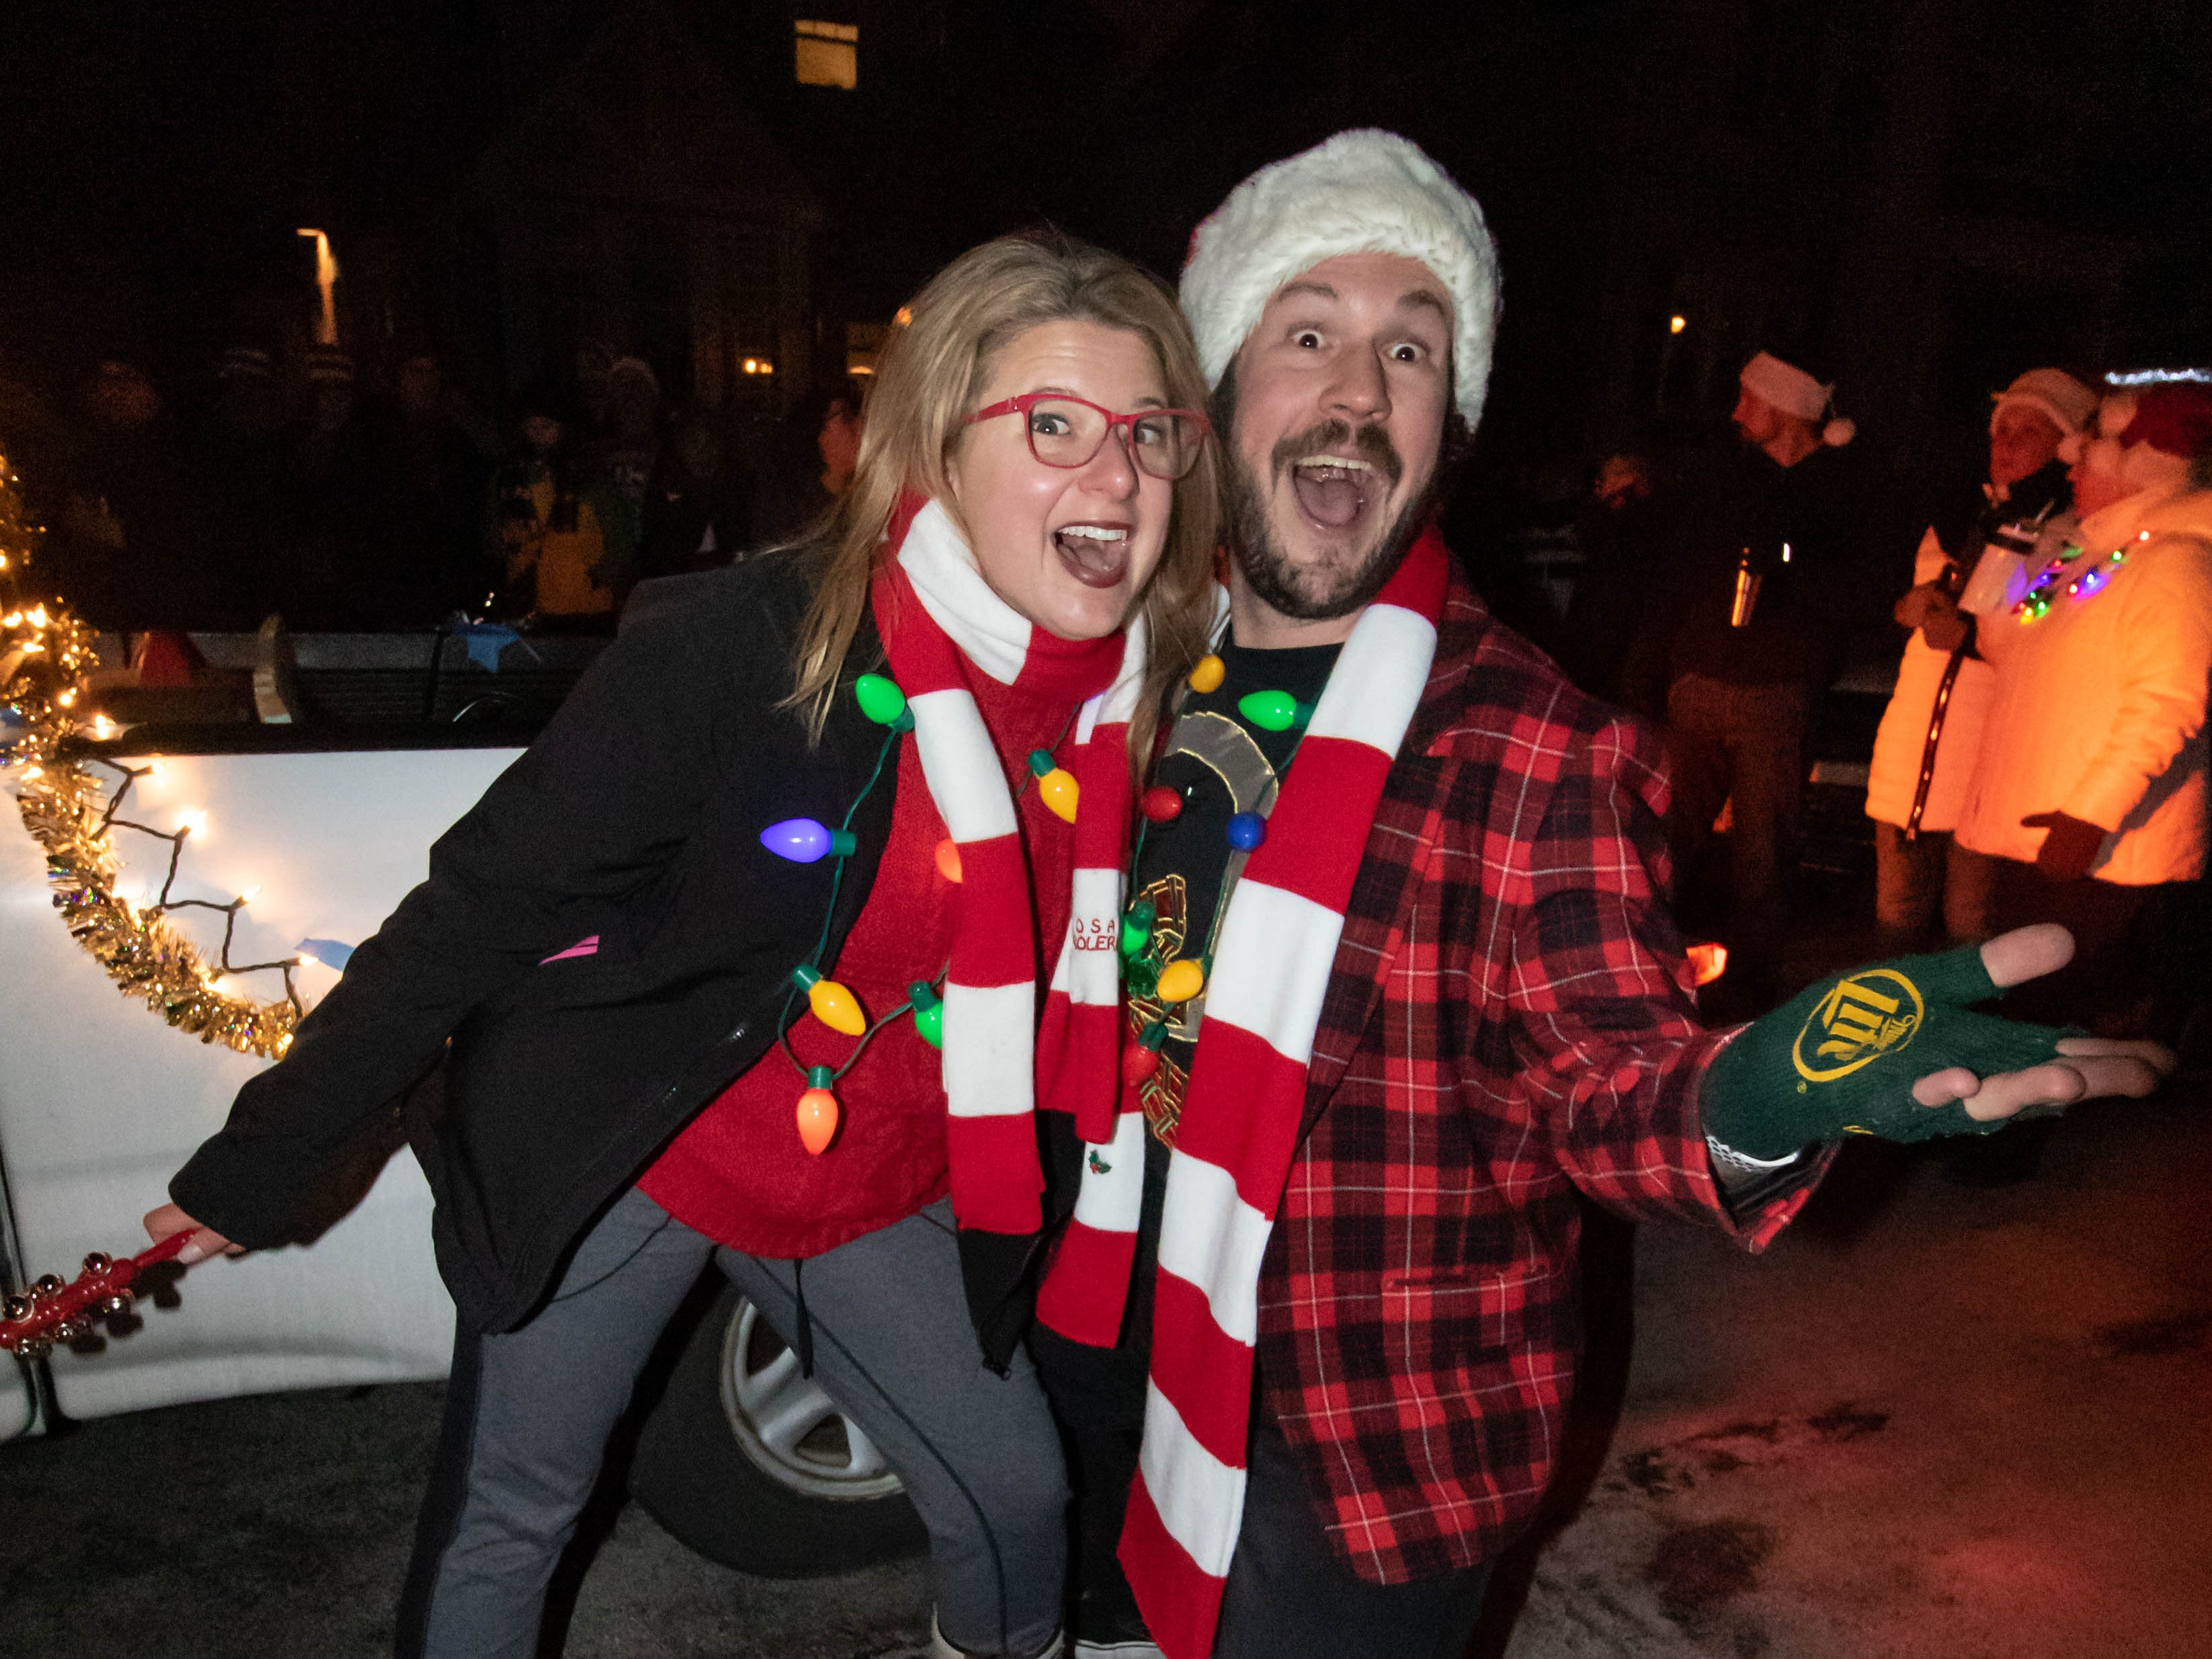 Event organizers Dan and Sherry Wilde lead more than one hundred carolers down 70th St. in Wauwatosa during Tosa's 7th Annual Christmas Caroling Extravaganza on Saturday, Dec. 22, 2018. The objective of the event is to spread holiday cheer and warm the winter night with song and folly.